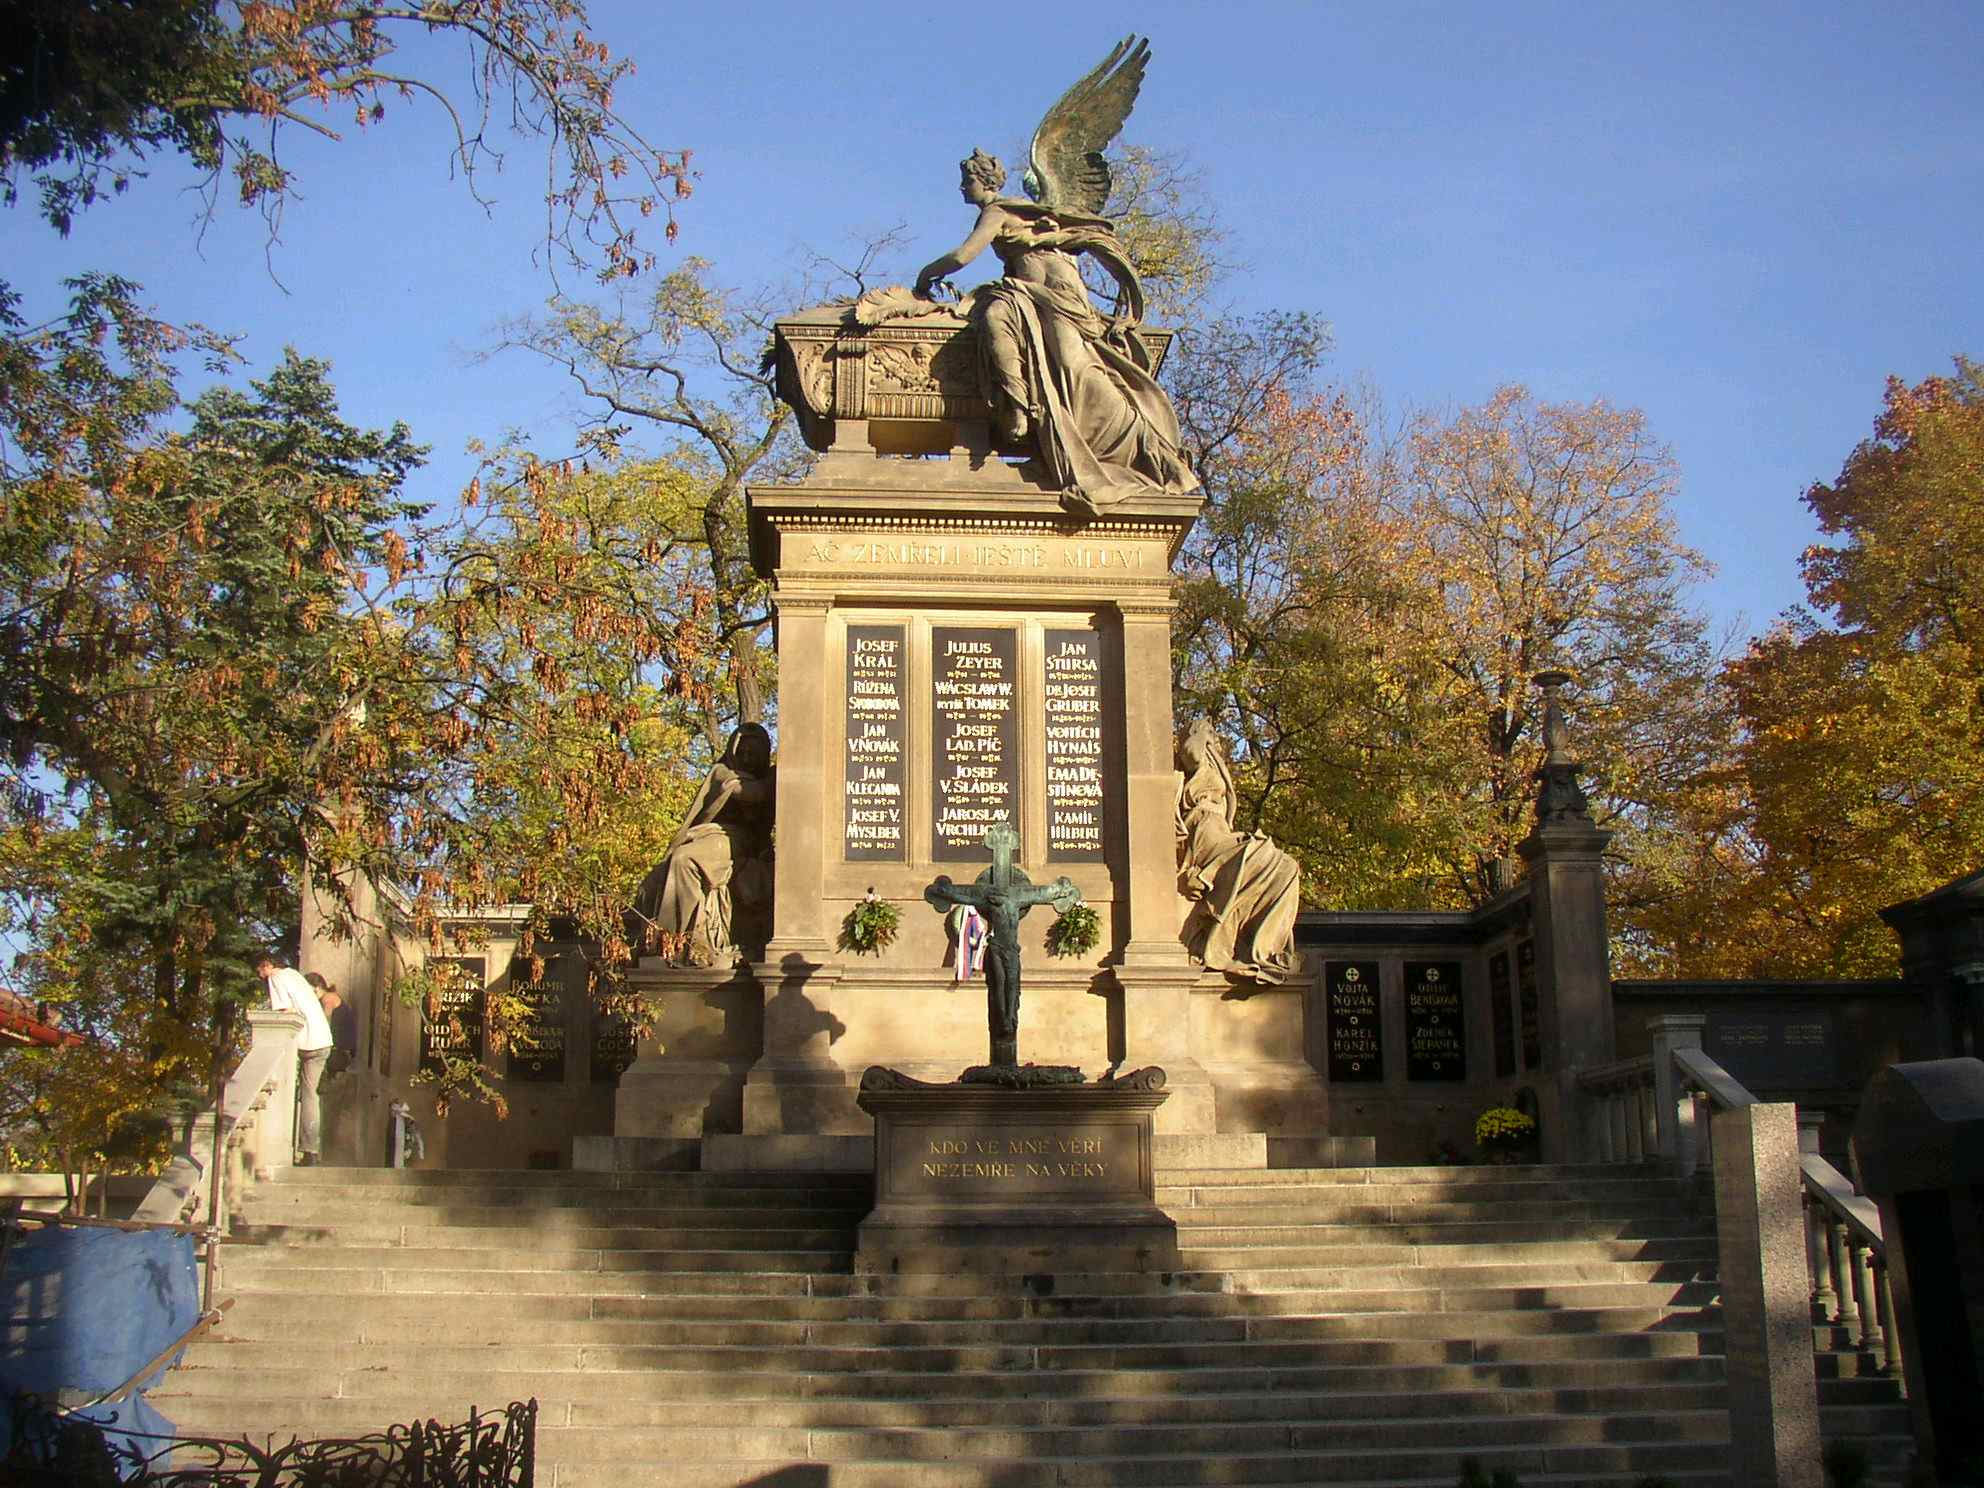 Pantheon located at the Vysehrad Cemetery